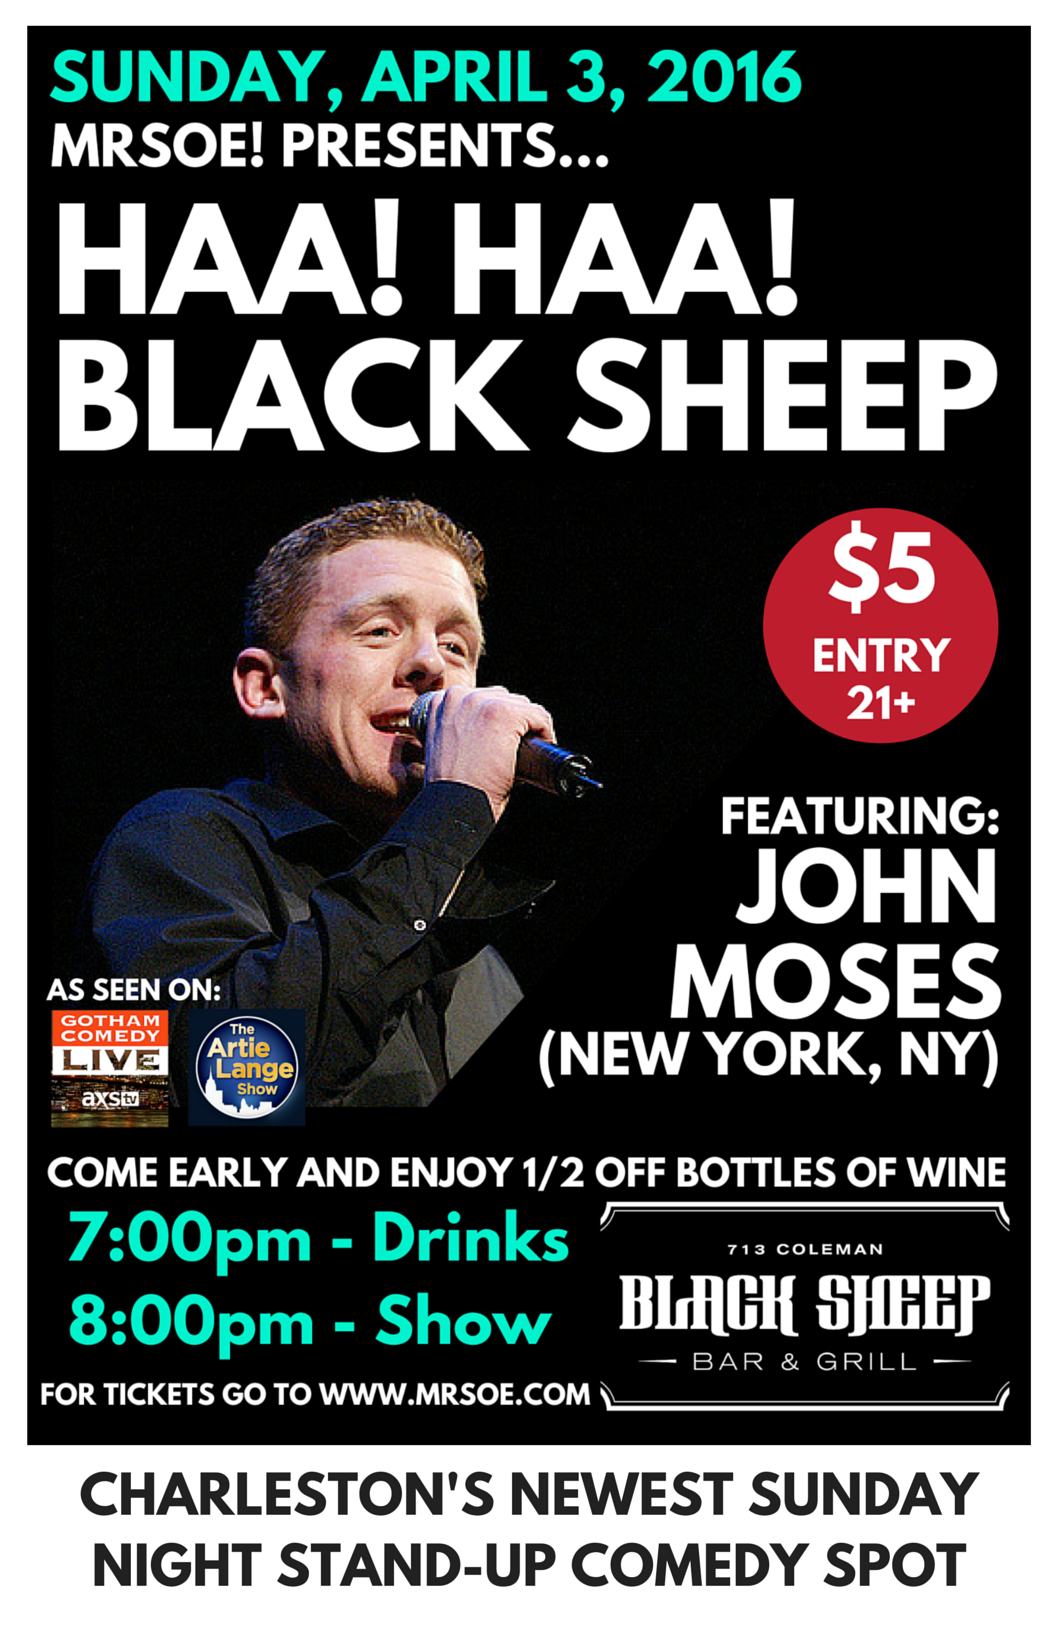 Haa! Haa! Black Sheep Presents...John Moses